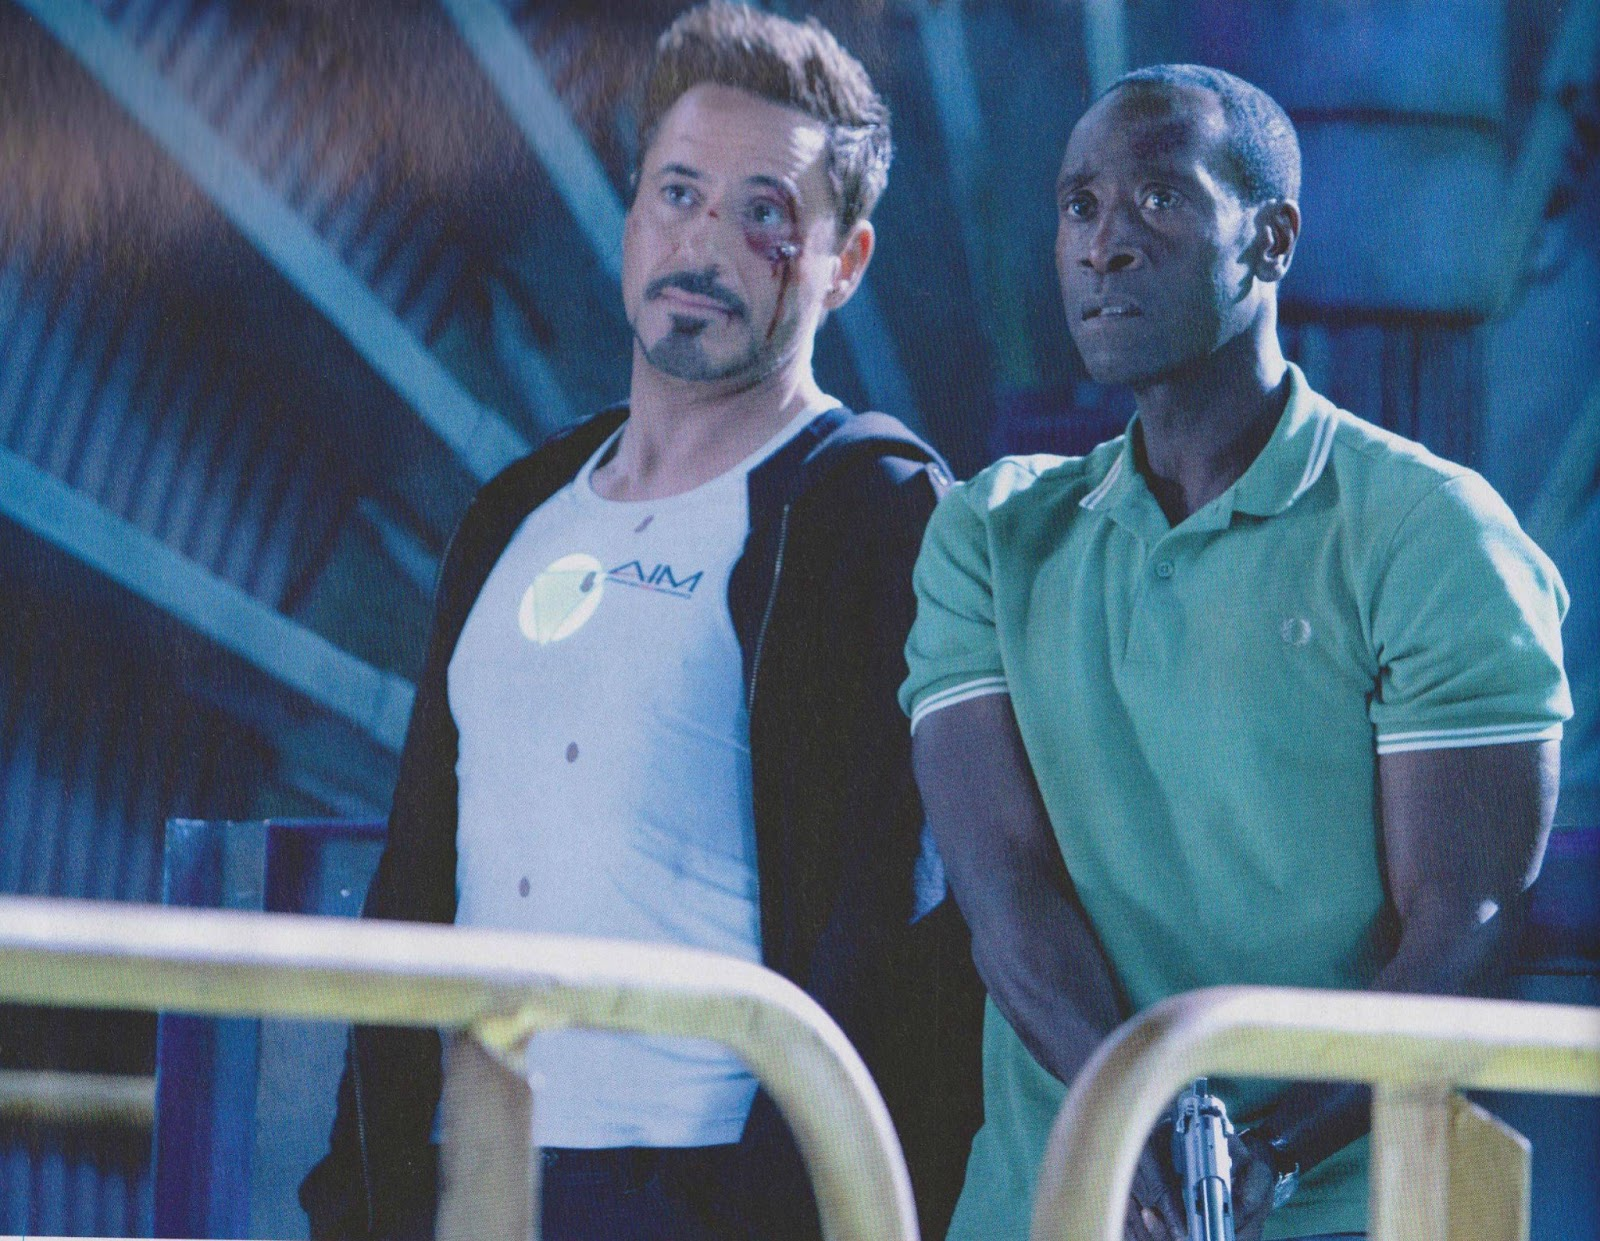 Iron Man 3 en Empire Magazine, Tony Star con camiseta de IMA /AIM